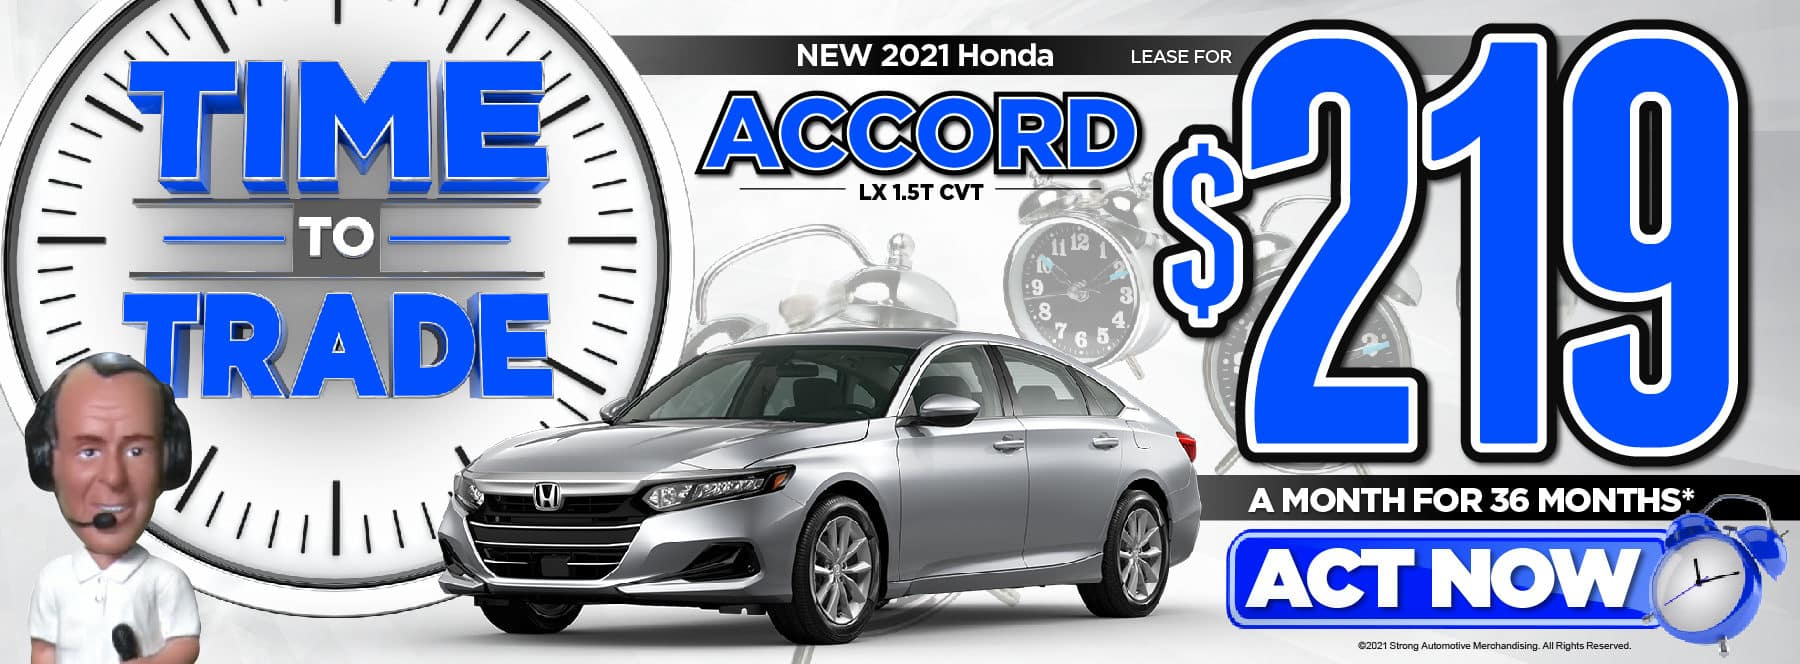 New 2021 Honda Accord LX Lease for $219/Mo* Act Now